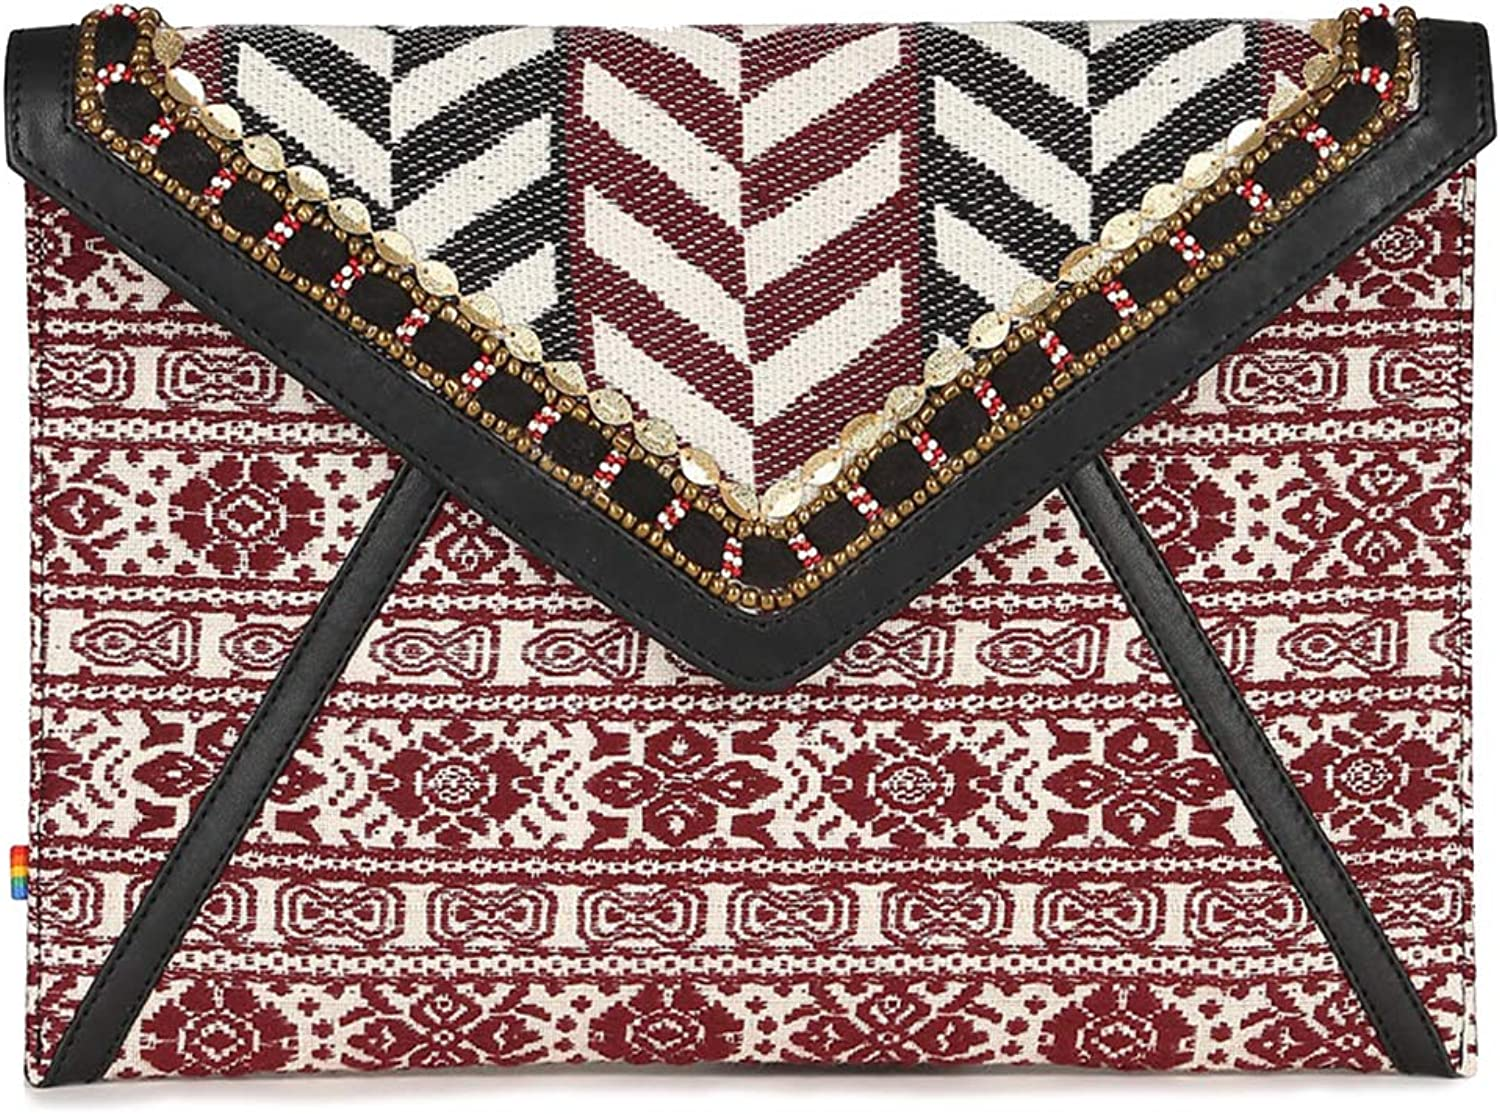 Envelope clutches for women black white tapestry embroidered structured day to evening sleek clutch for ladies